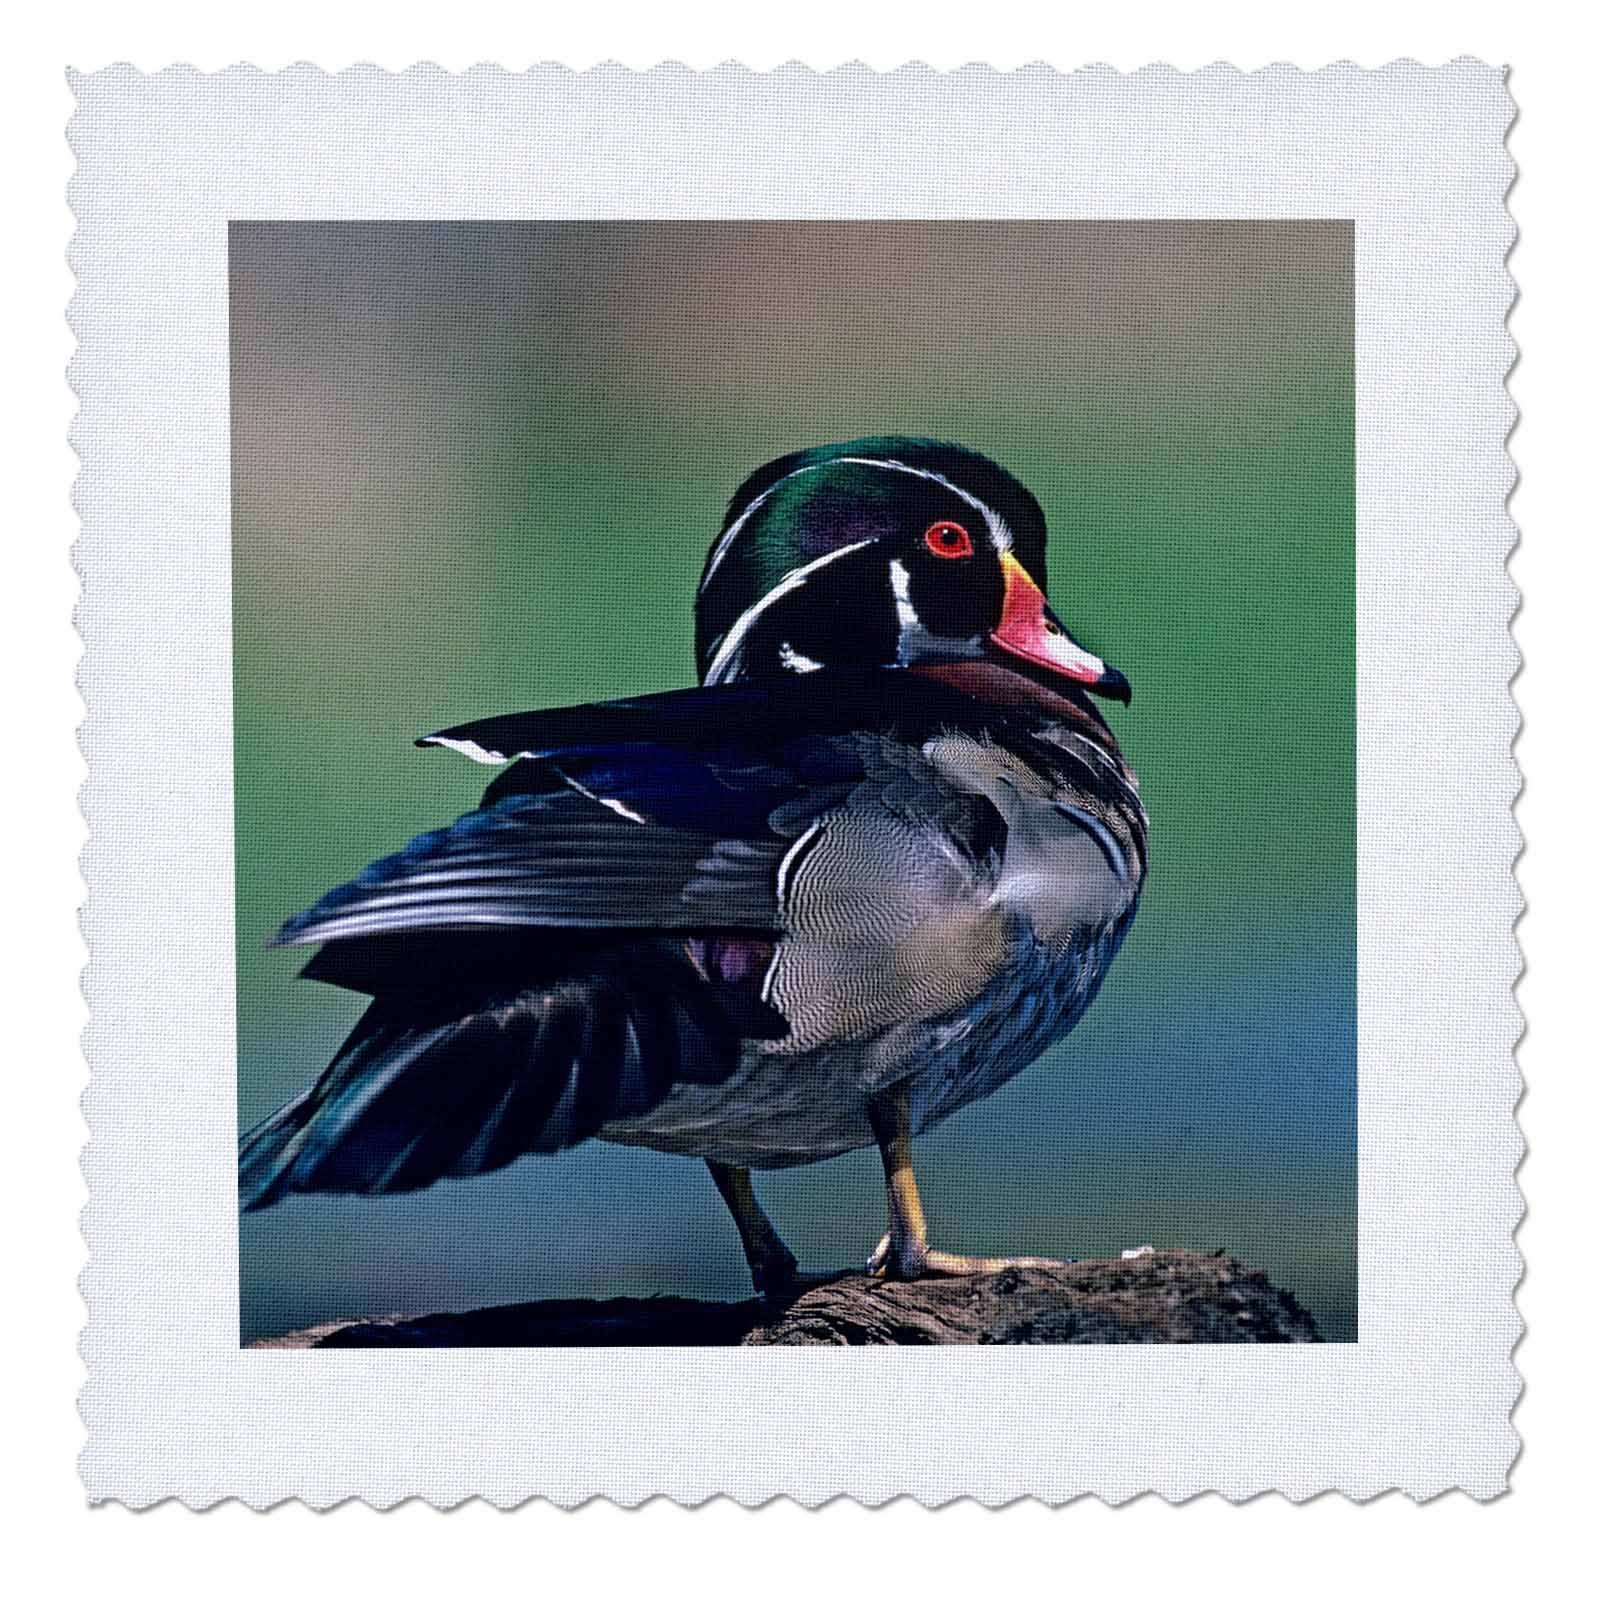 3dRose Danita Delimont - Ducks - Male wood duck, Aix sponsa, perched on a rock, Canada - 20x20 inch quilt square (qs_258122_8)